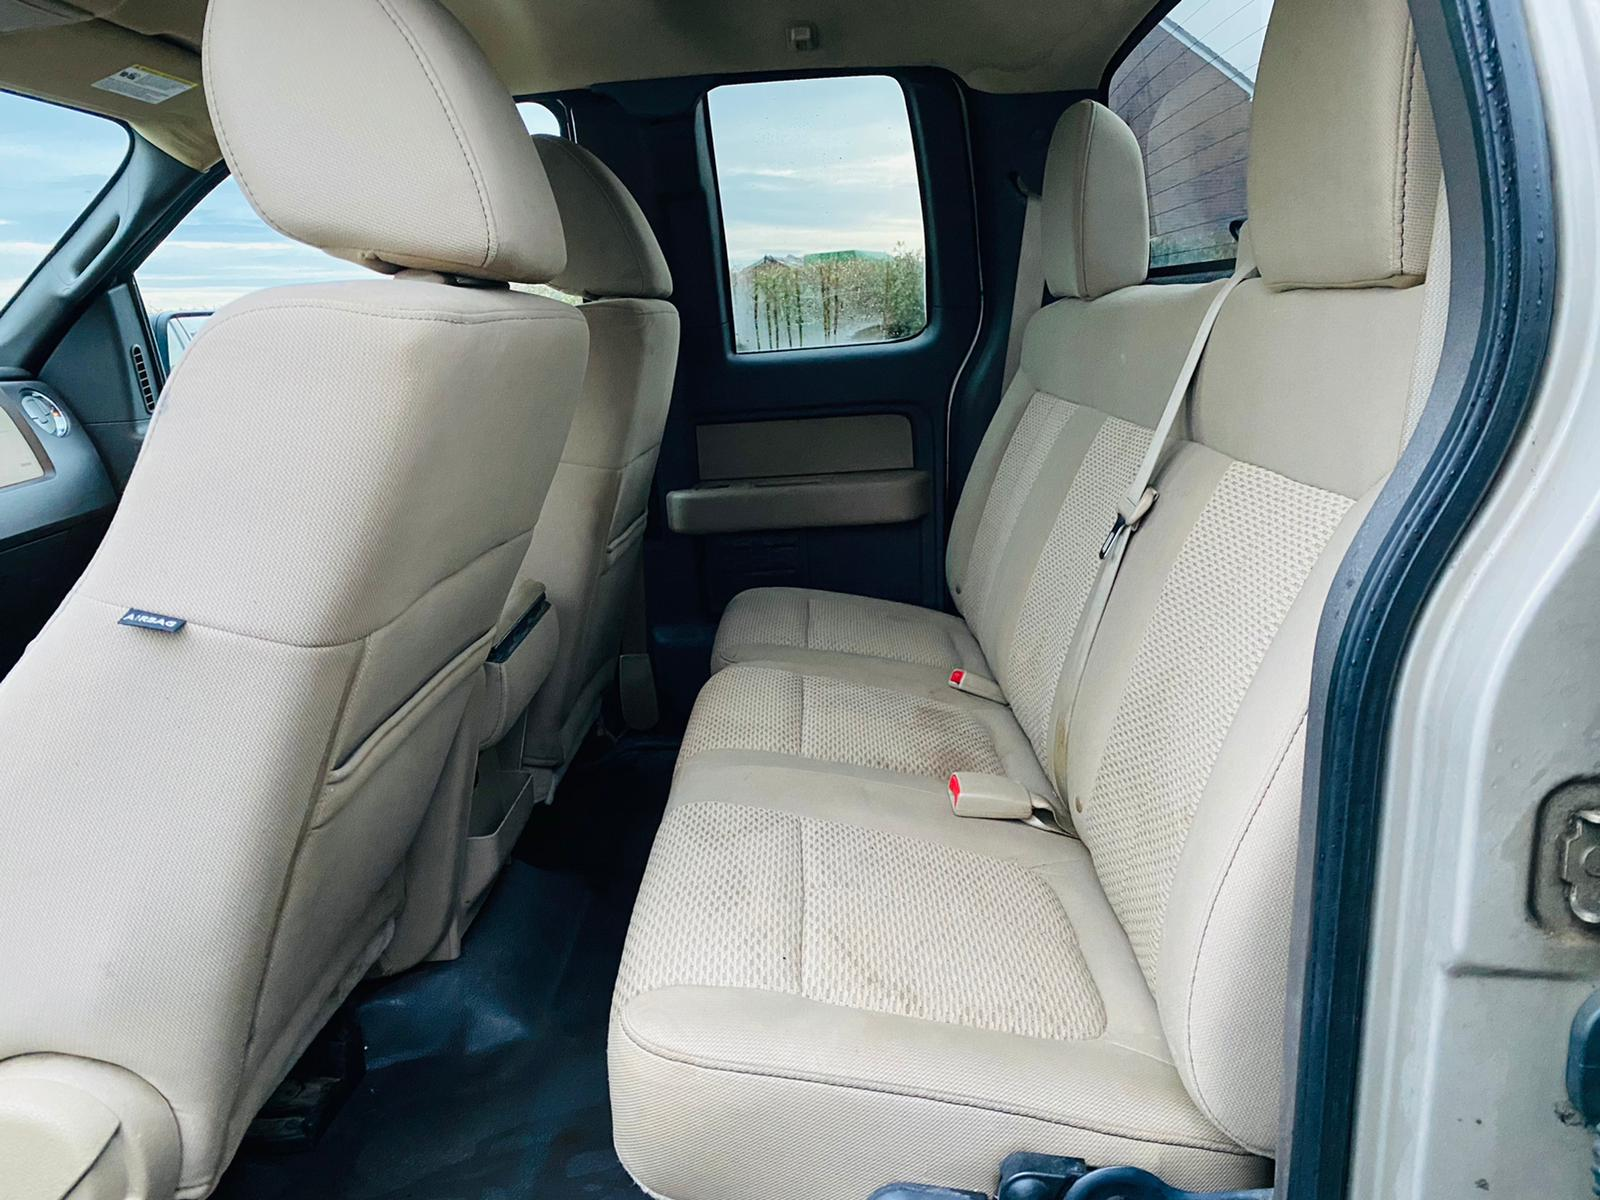 (RESERVE MET) Ford F-150 XLT 4.6L V8 Supercab - 2010 Year - 6 Seats - Fresh Imports - Image 25 of 39